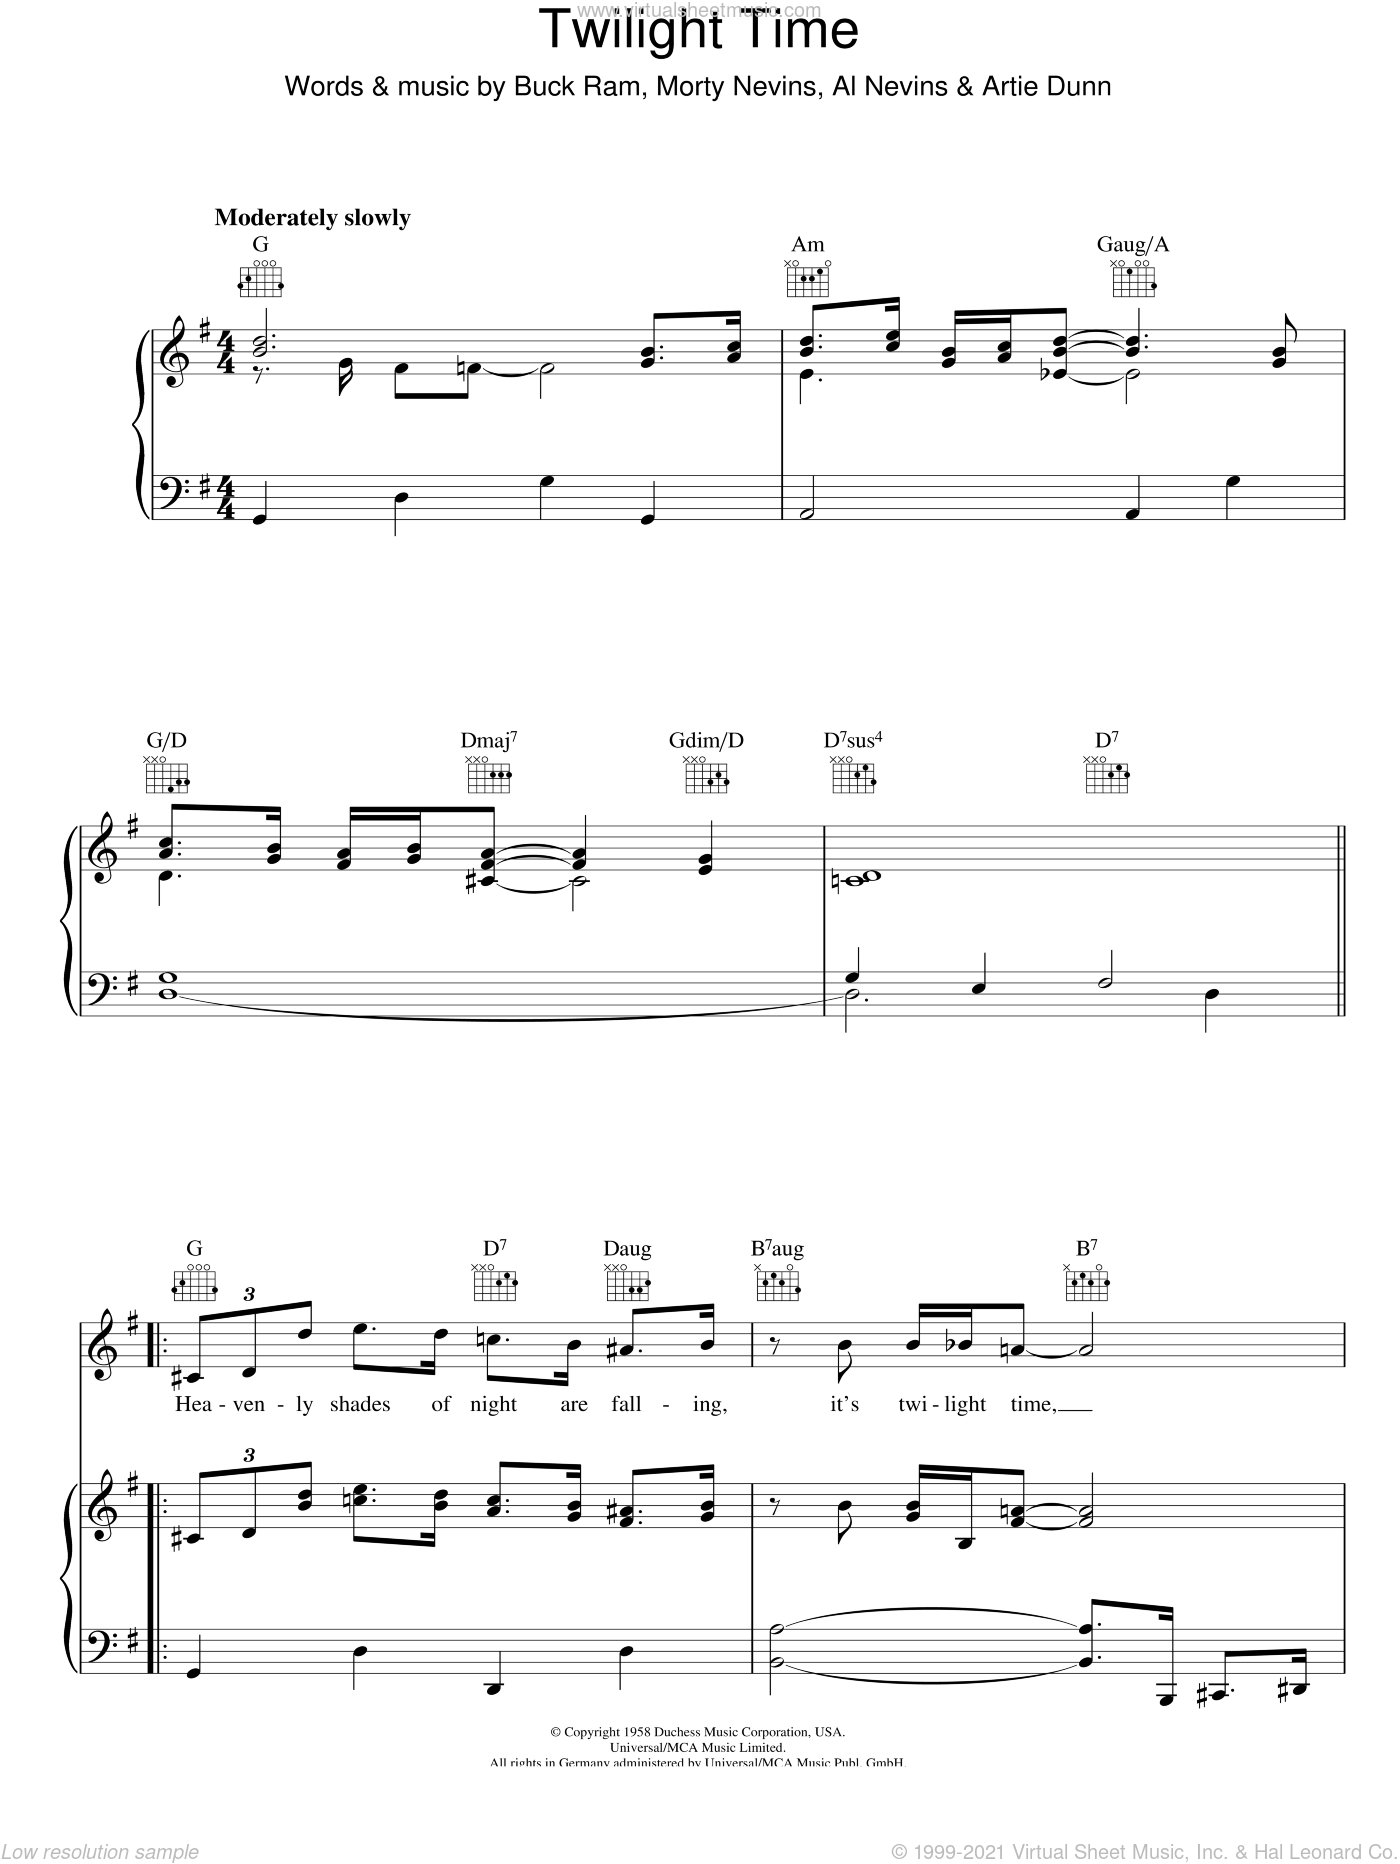 Twilight Time sheet music for voice, piano or guitar by Morty Nevins, The Platters and Buck Ram